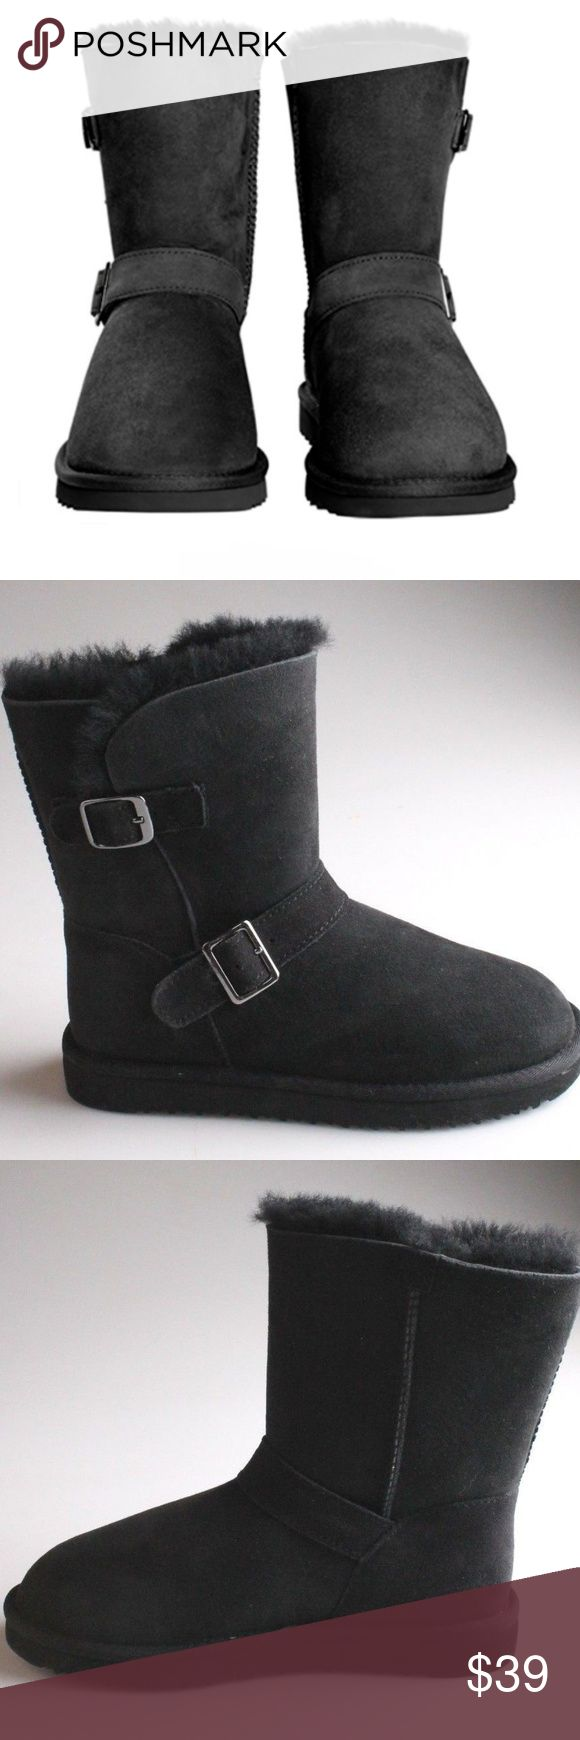 Kirkland Signature™ Ladies' Shearling Buckle Boot BLACK Twinface Australian sheepskin upper Shearling sock lining provides supreme cushioning & warmth Adjustable buckle on upper & shaft Lightweight EVA outsole for solid traction Nylon binding EVA outsole Care Instructions:  Wipe with a damp cloth Do not dry clean Kirkland Signature Shoes Winter & Rain Boots